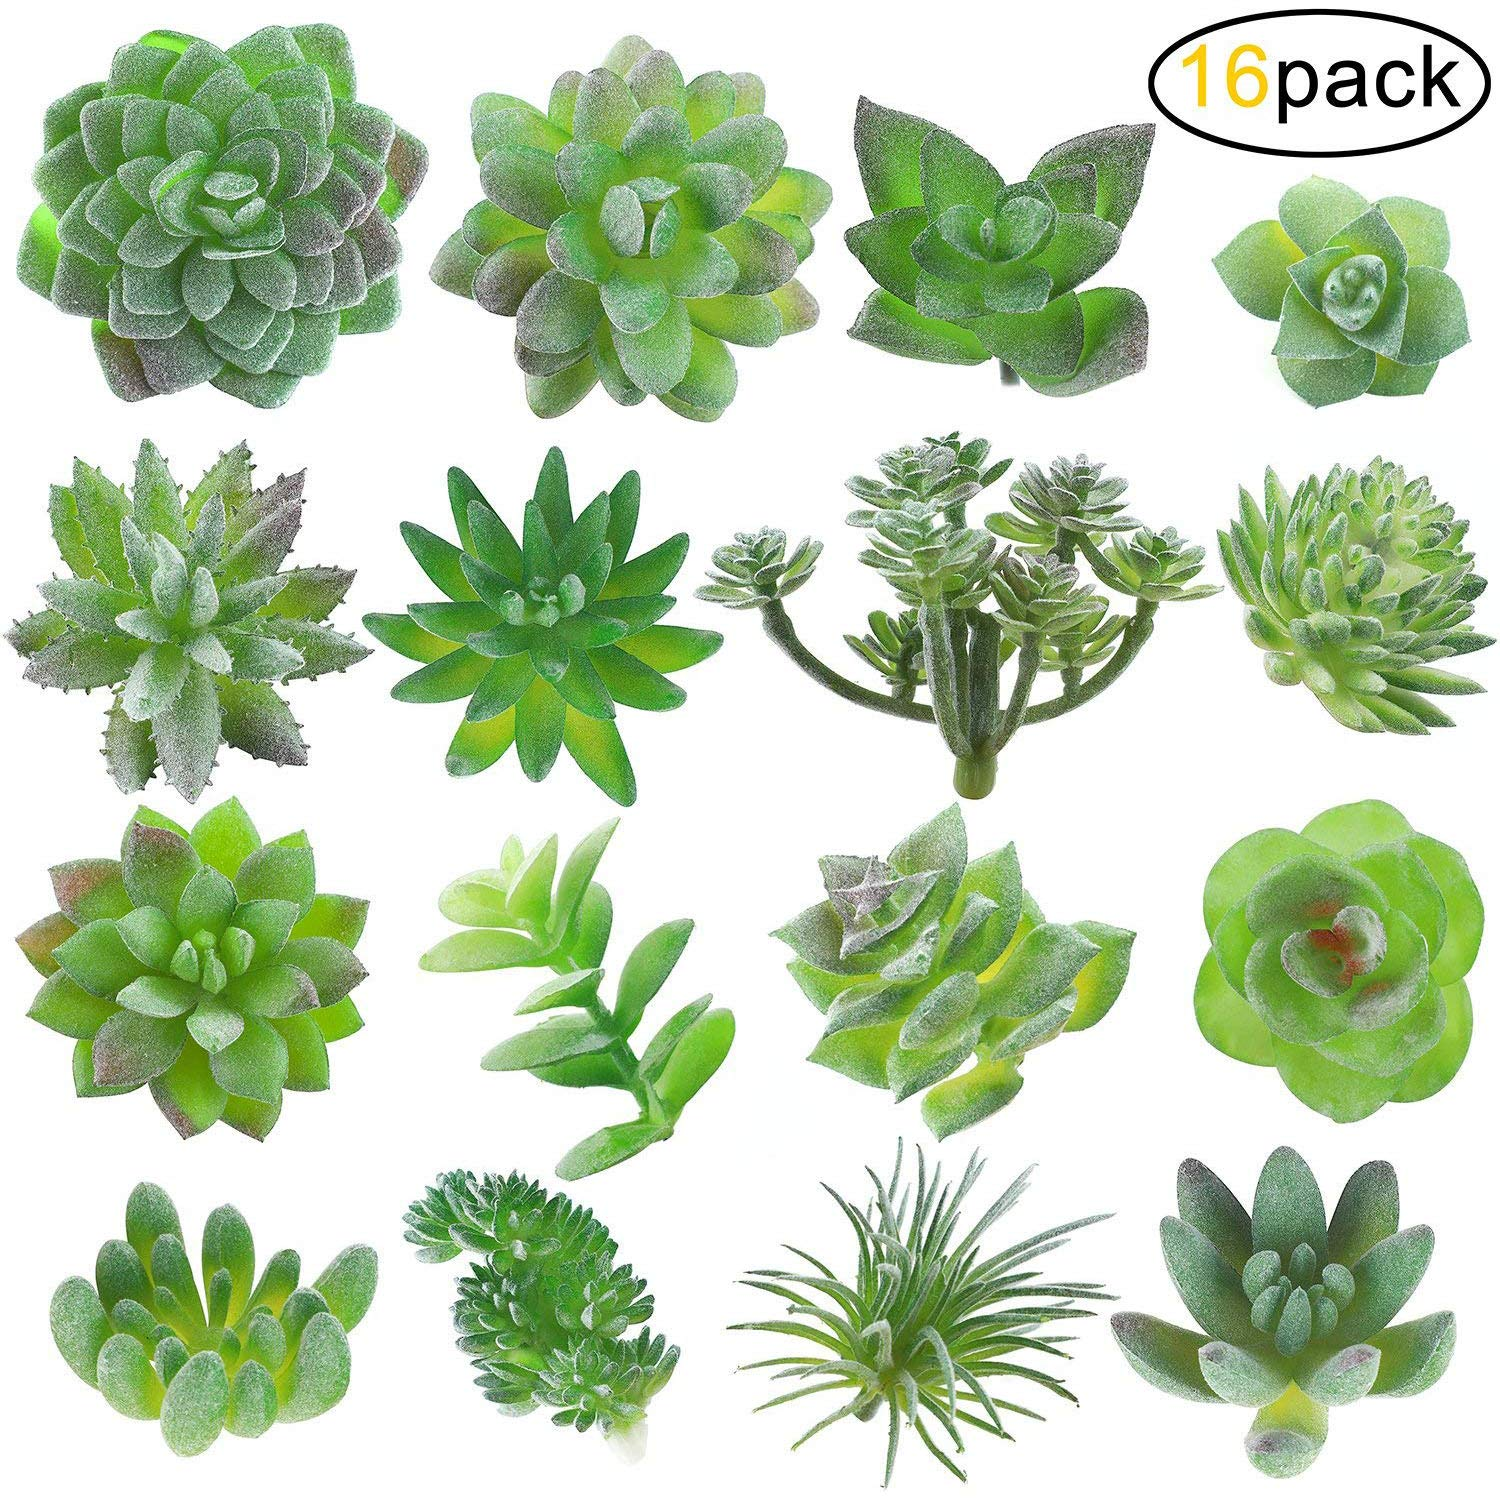 Childom Artificial Succulents Plants Flowers, Mini Assorted Picks Faux Succulent Unpotted Decor Stems Fake Succulents for Birthday Home Decor Indoor Wall Garden DIY, Pack of 16 Pcs